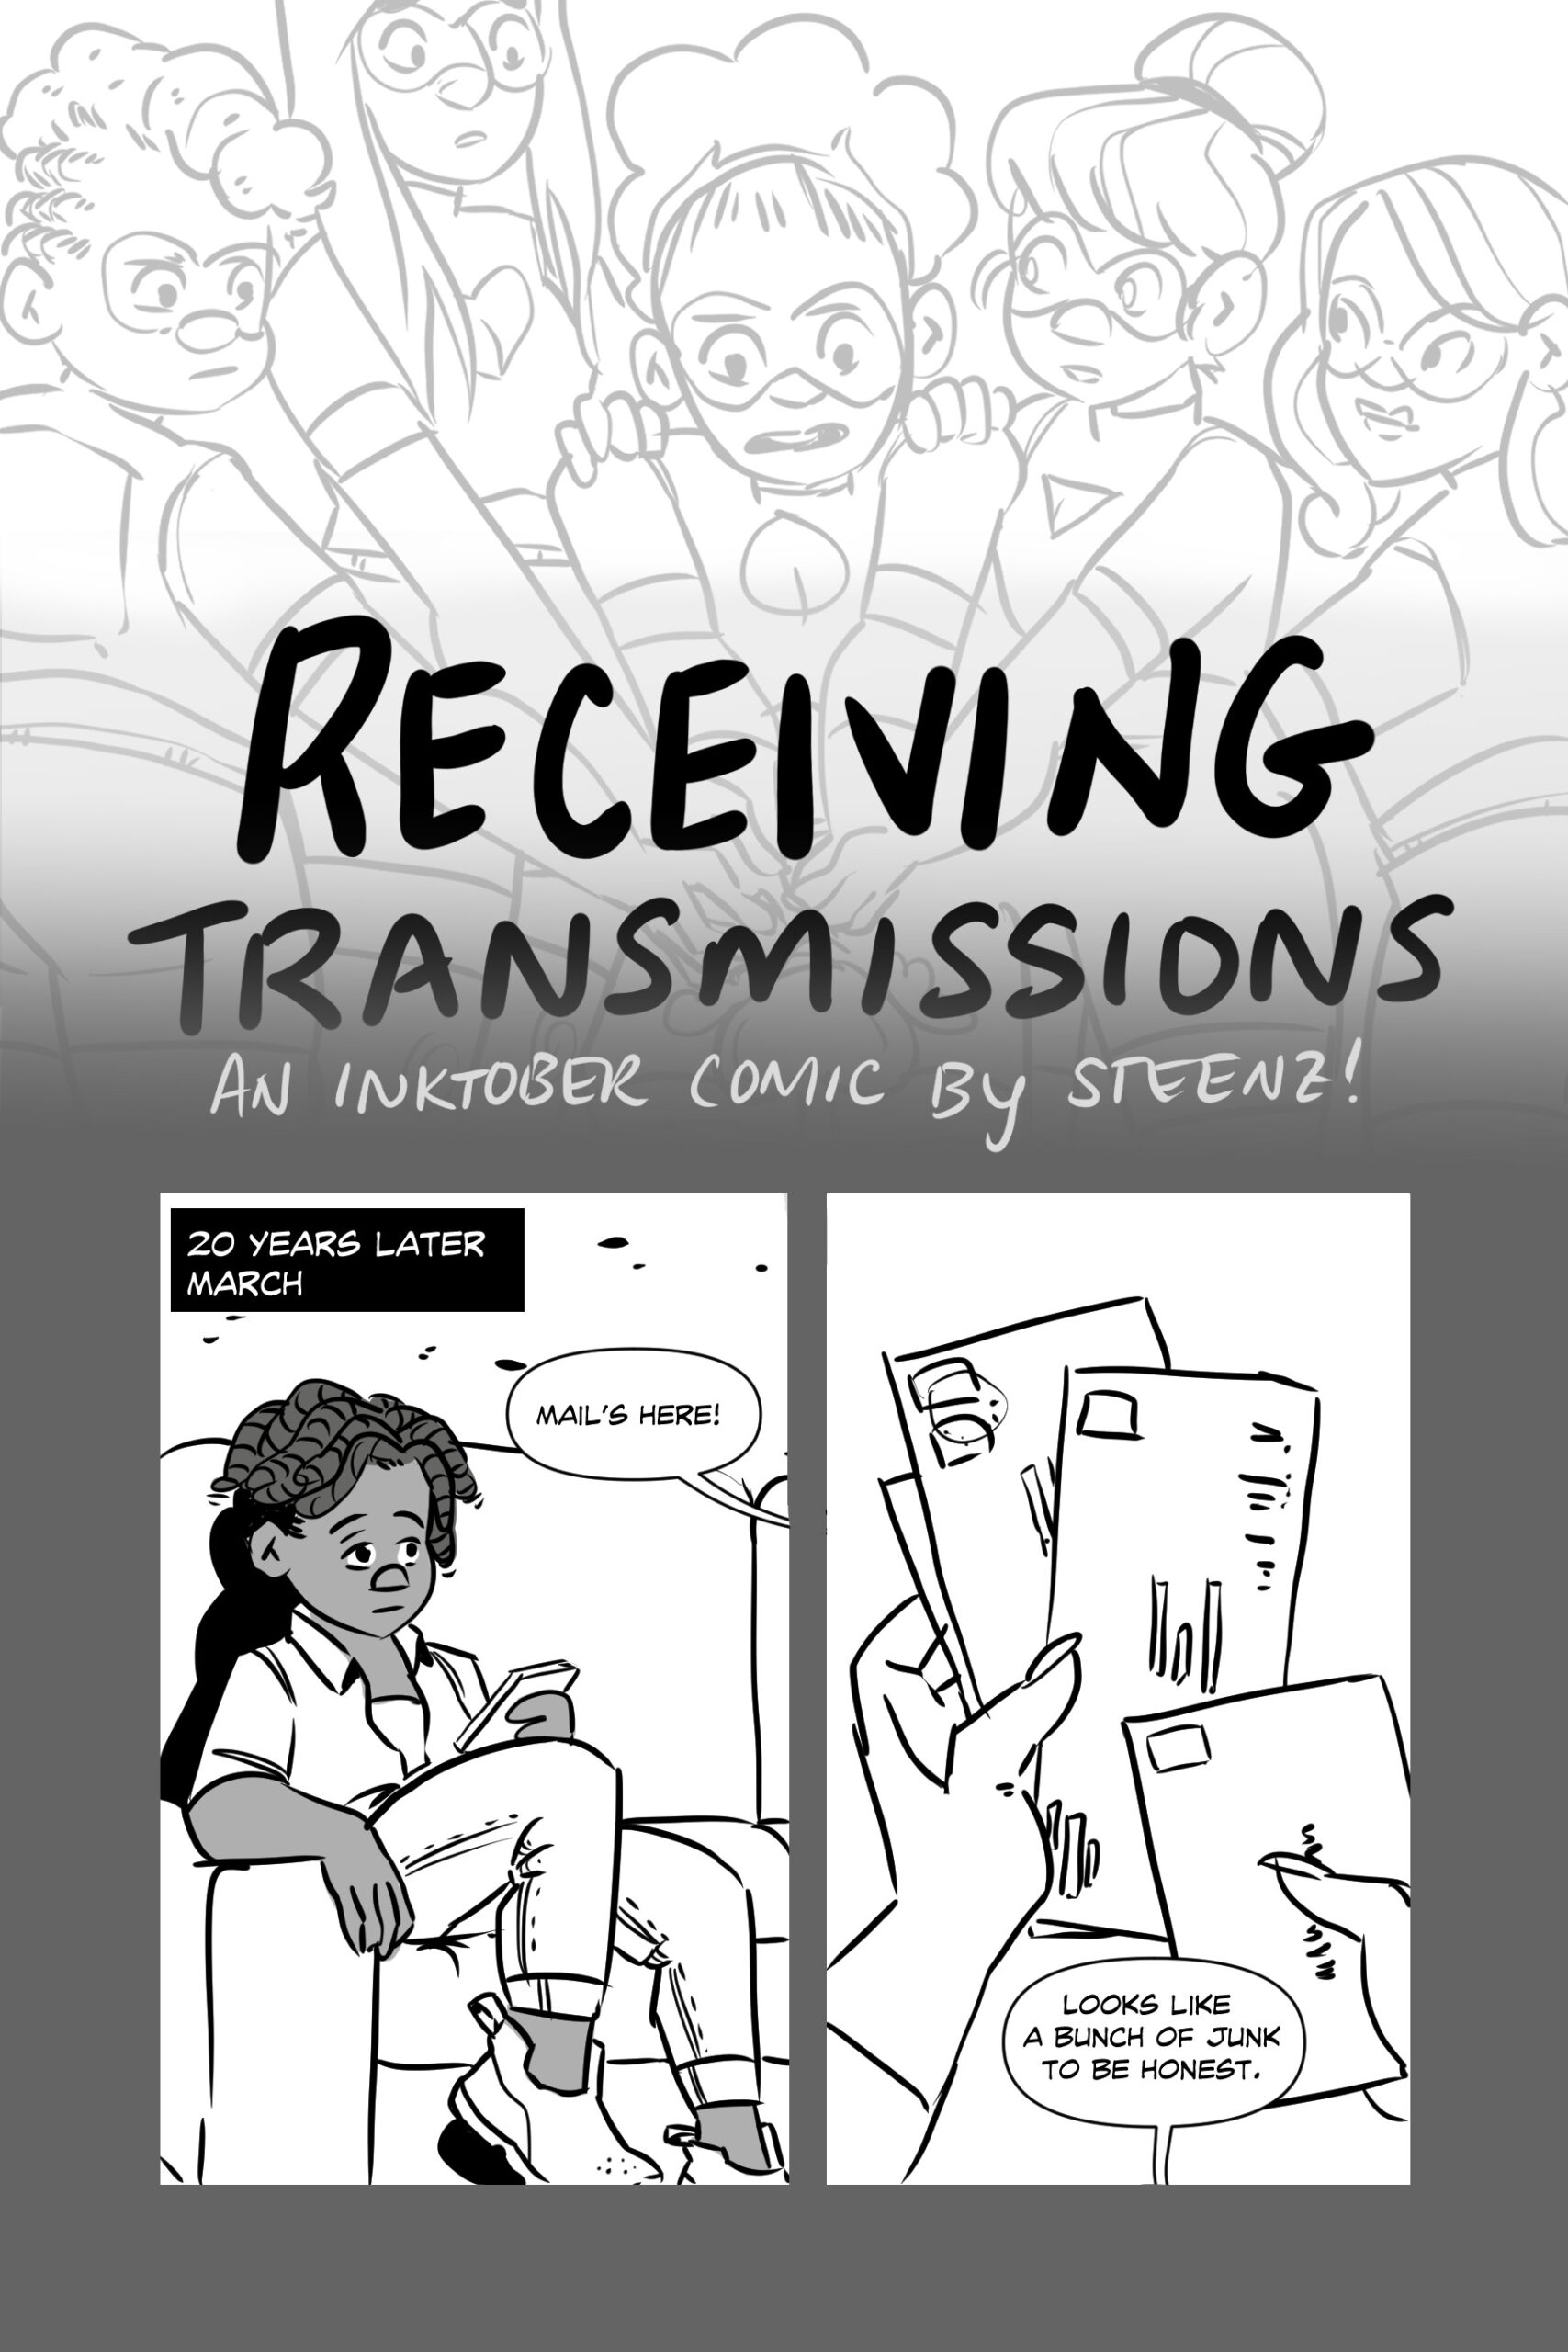 Receiving Transmissions by Steenz